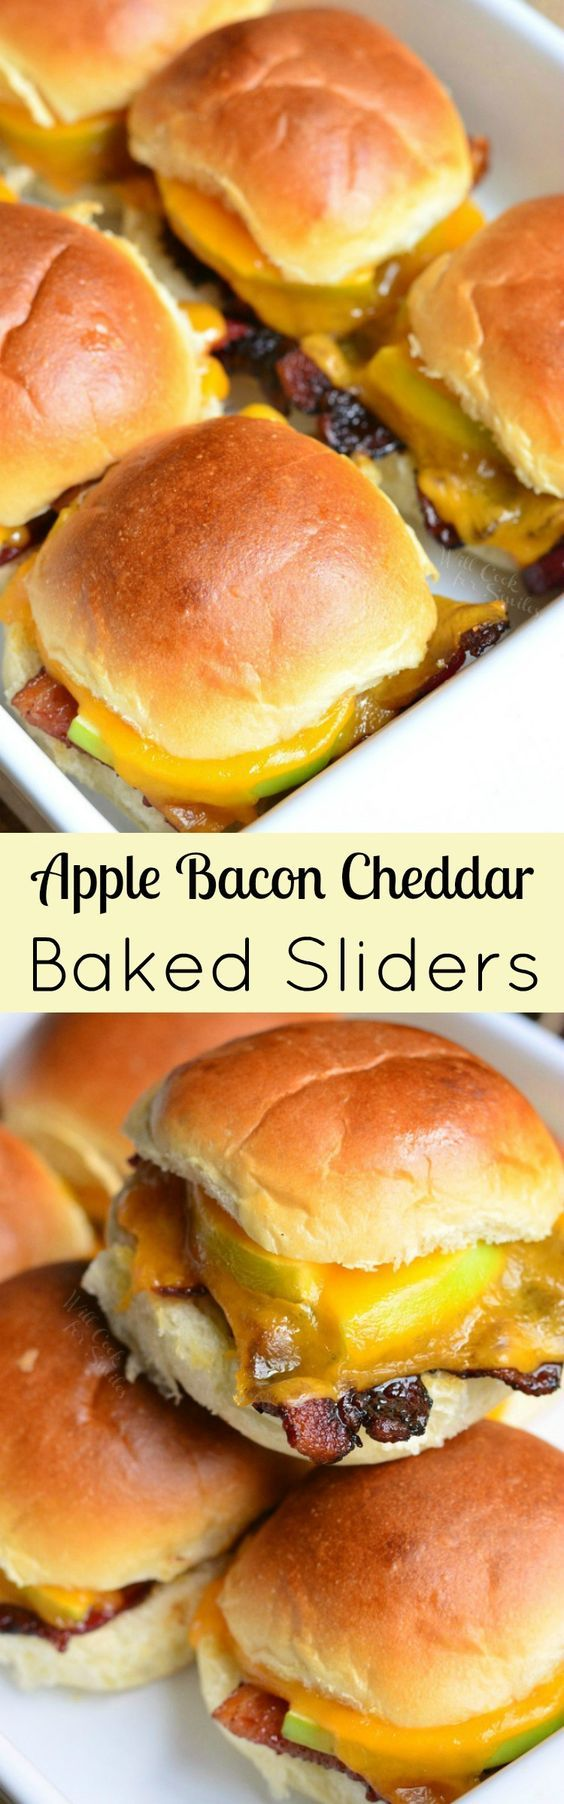 Apple Bacon Cheddar Baked Sliders ~ these little baked sliders are easy to make and pack with the delicious flavor combination of brown sugar, crispy bacon, apples, and cheddar!